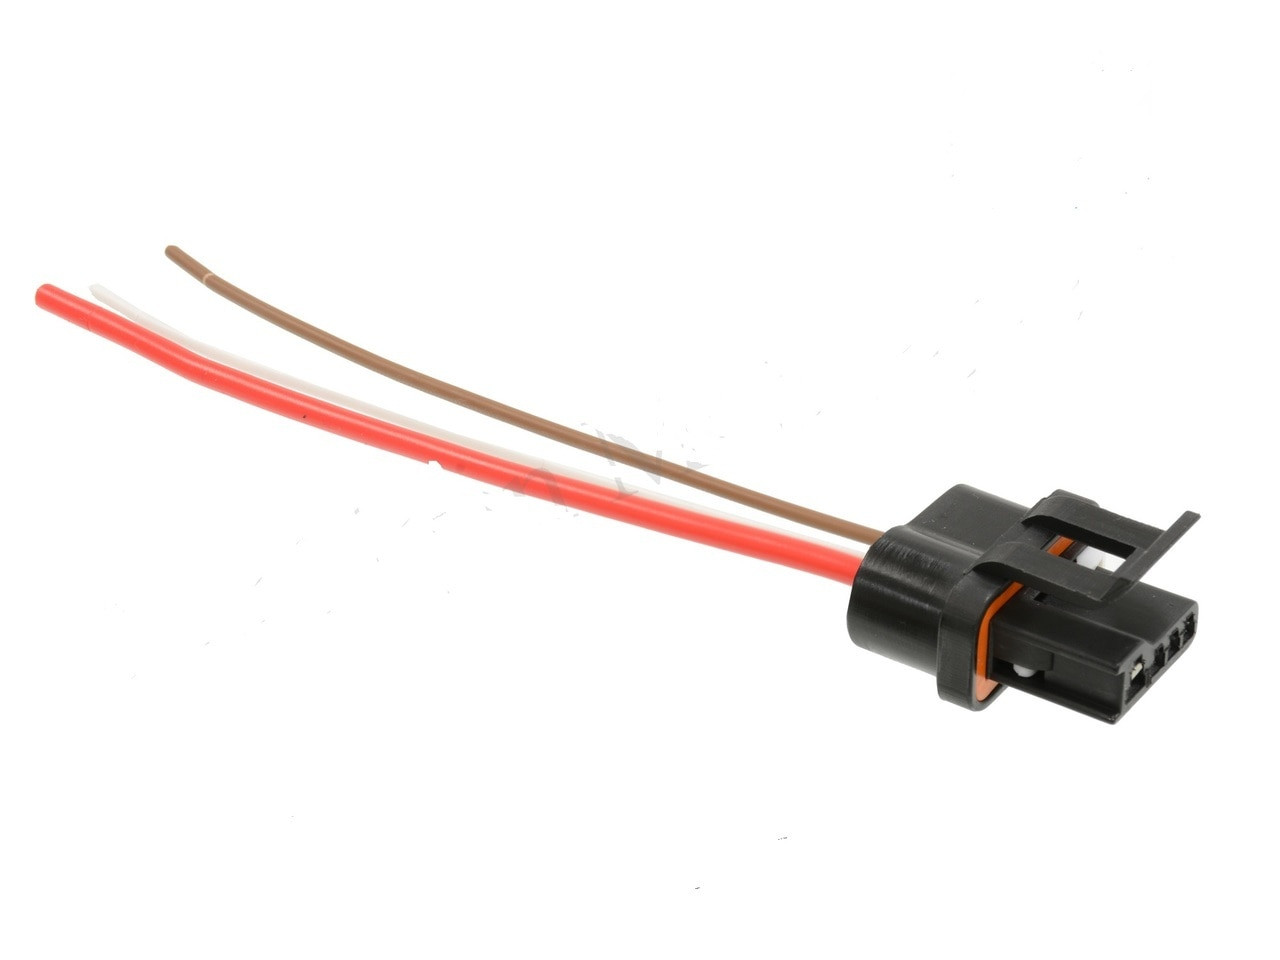 hight resolution of 1988 1992 tpi tbi alternator wiring harness connector fits camaro firebird